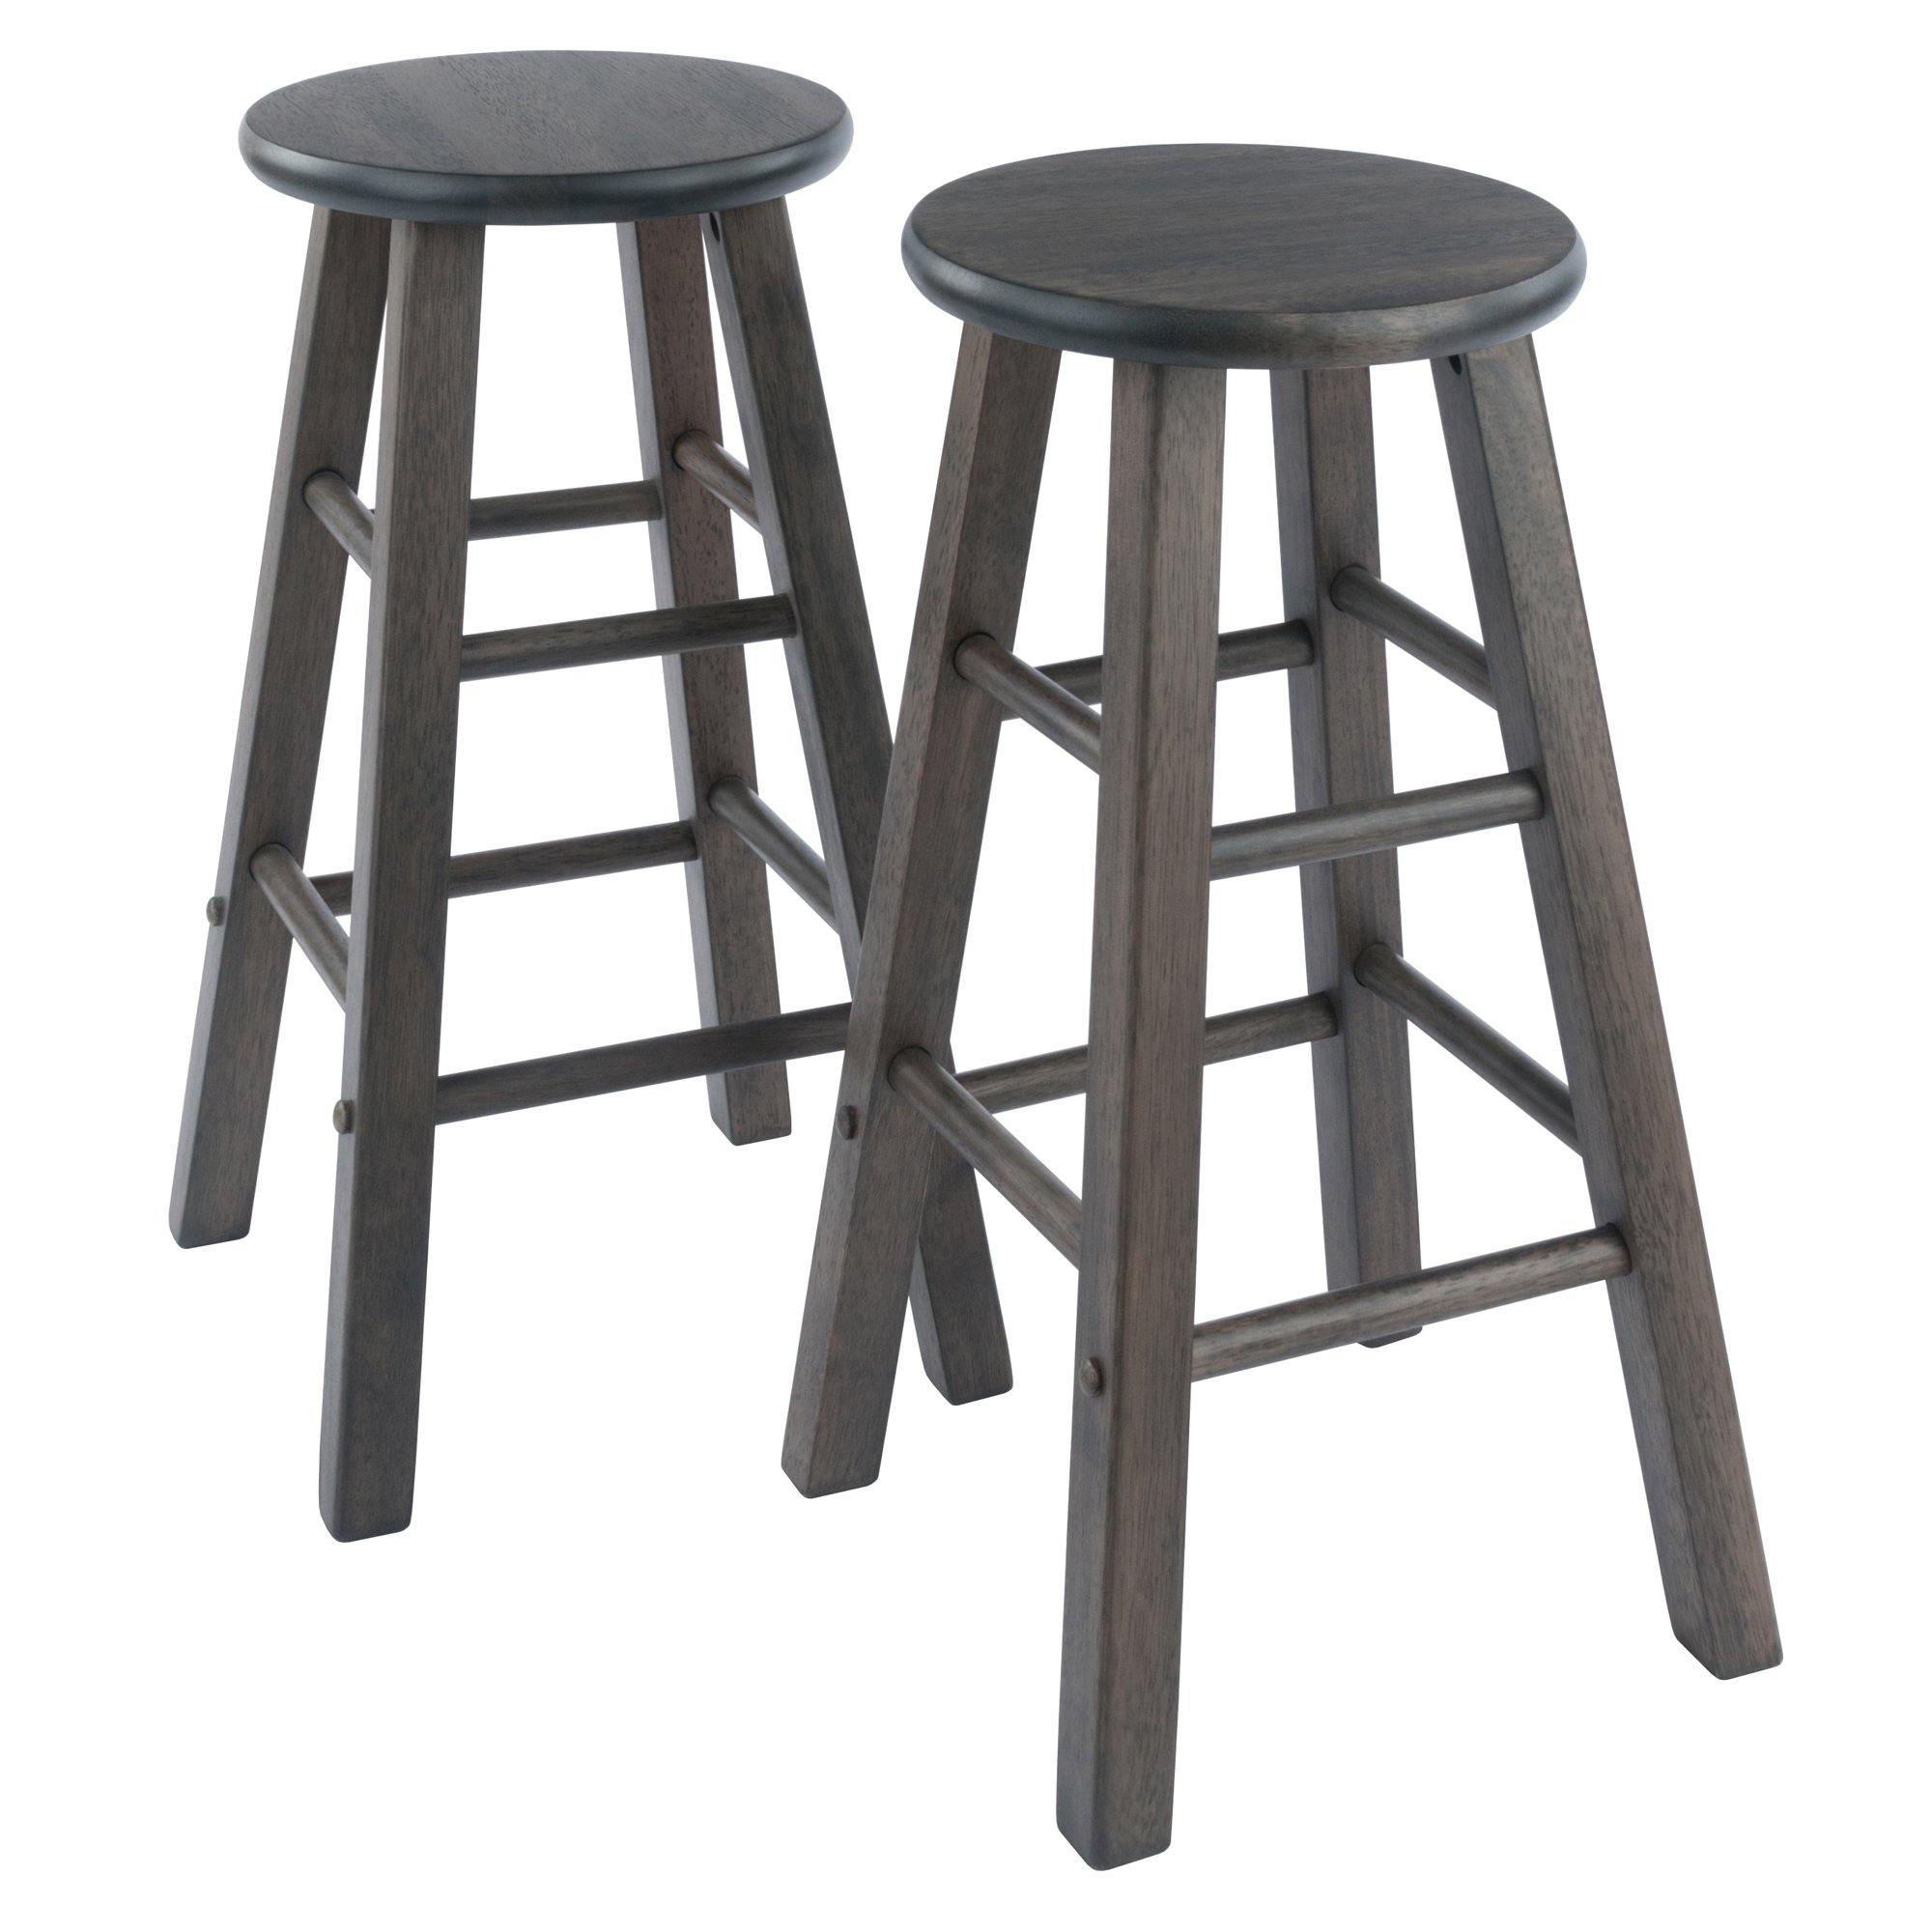 Element Counter Stools, 2-Pc Set, Oyster Gray - My USA Furniture